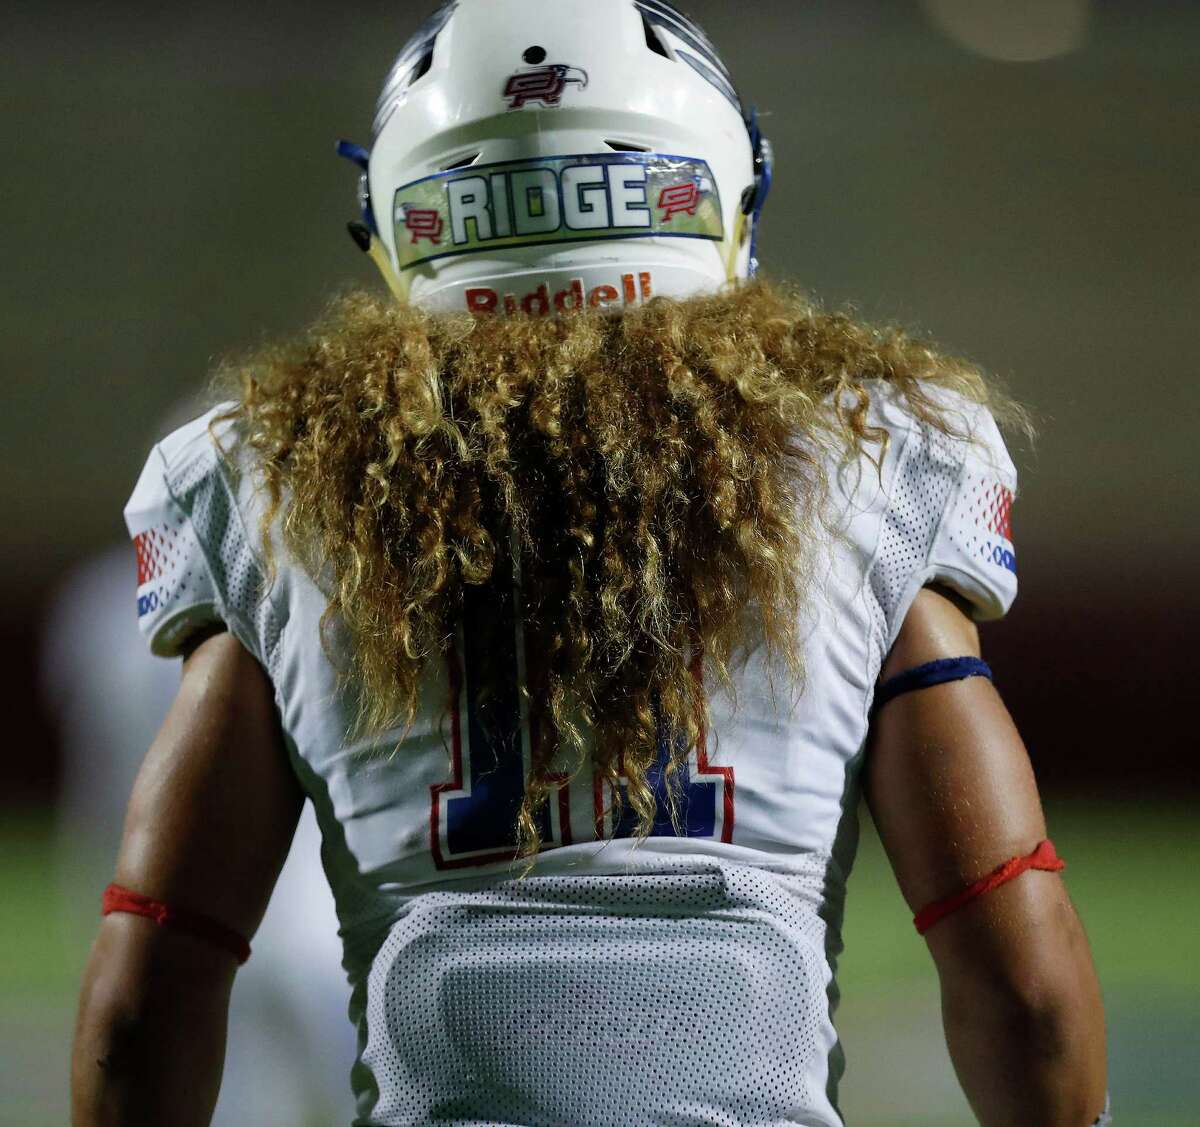 Oak Ridge's Grant Stuard's hair during the second half of a District 12-6A high school football game between The Woodlands and Oak Ridge, Thursday, Oct. 13, 2016 in Shenandoah.